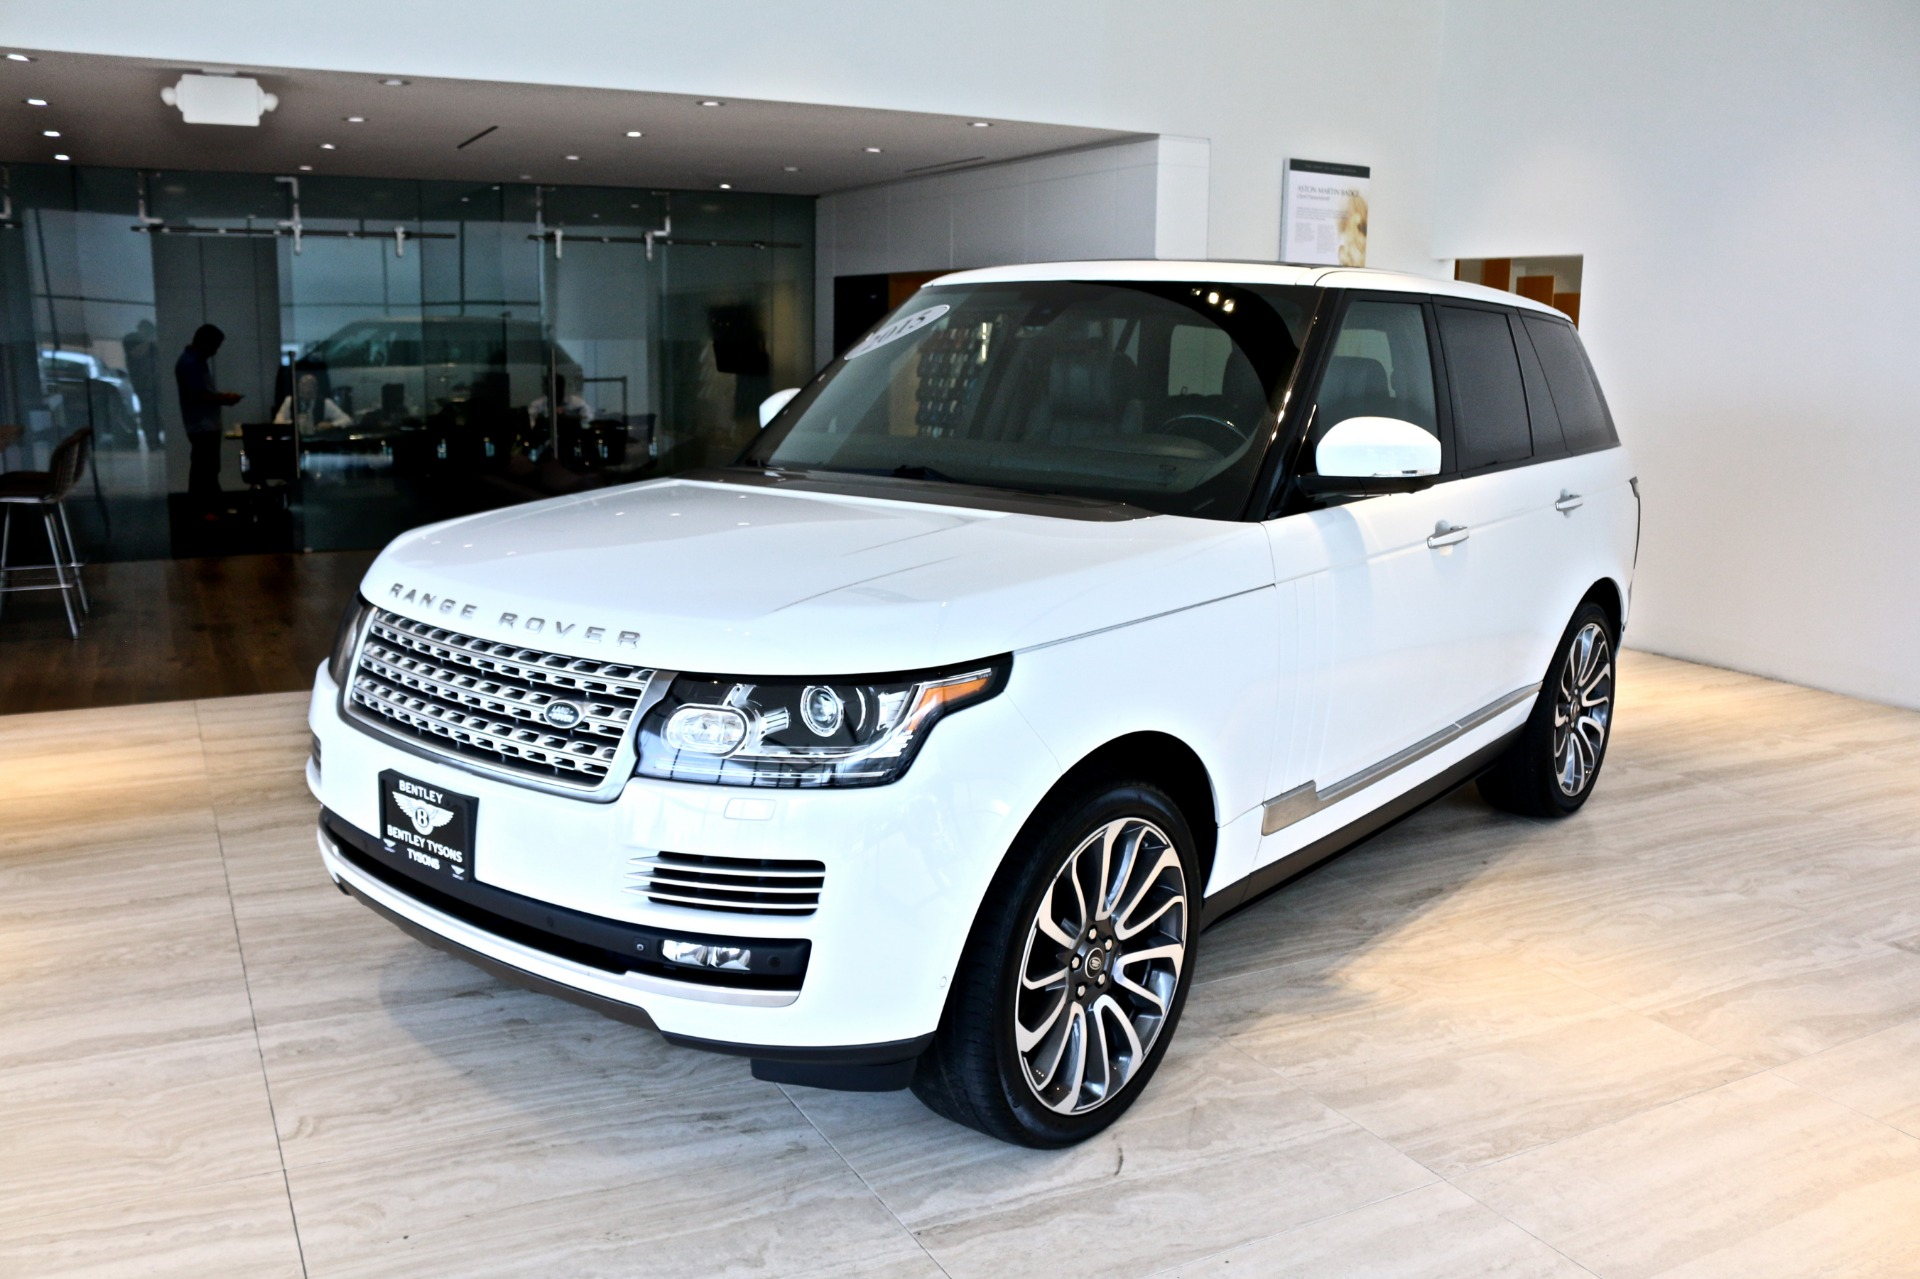 Lease Specials Near Me >> 2015 Land Rover Range Rover Autobiography Stock ...